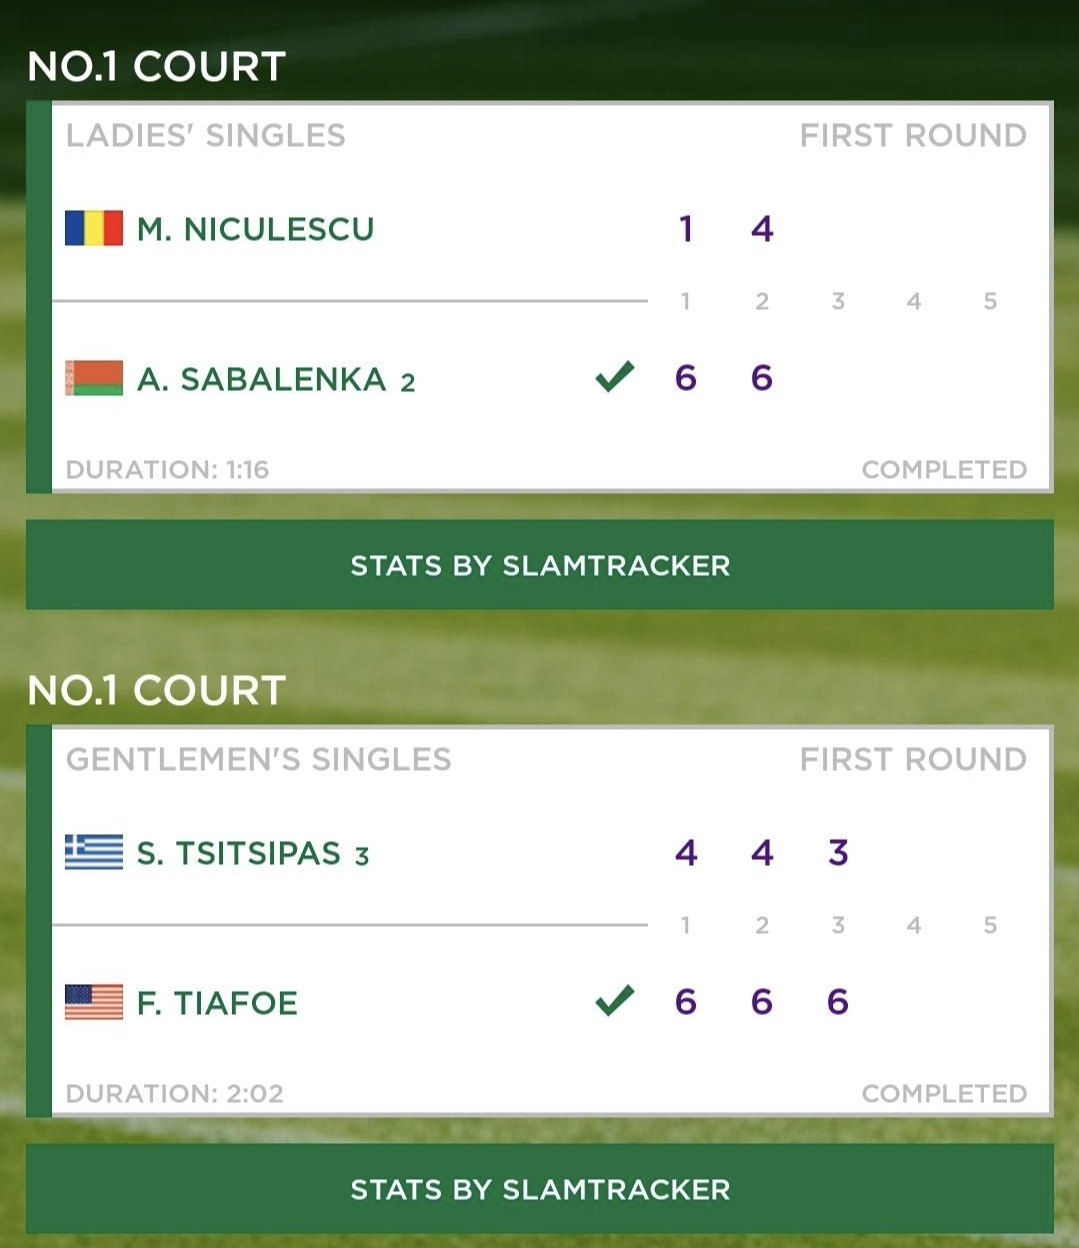 First two matches at No 1 Court